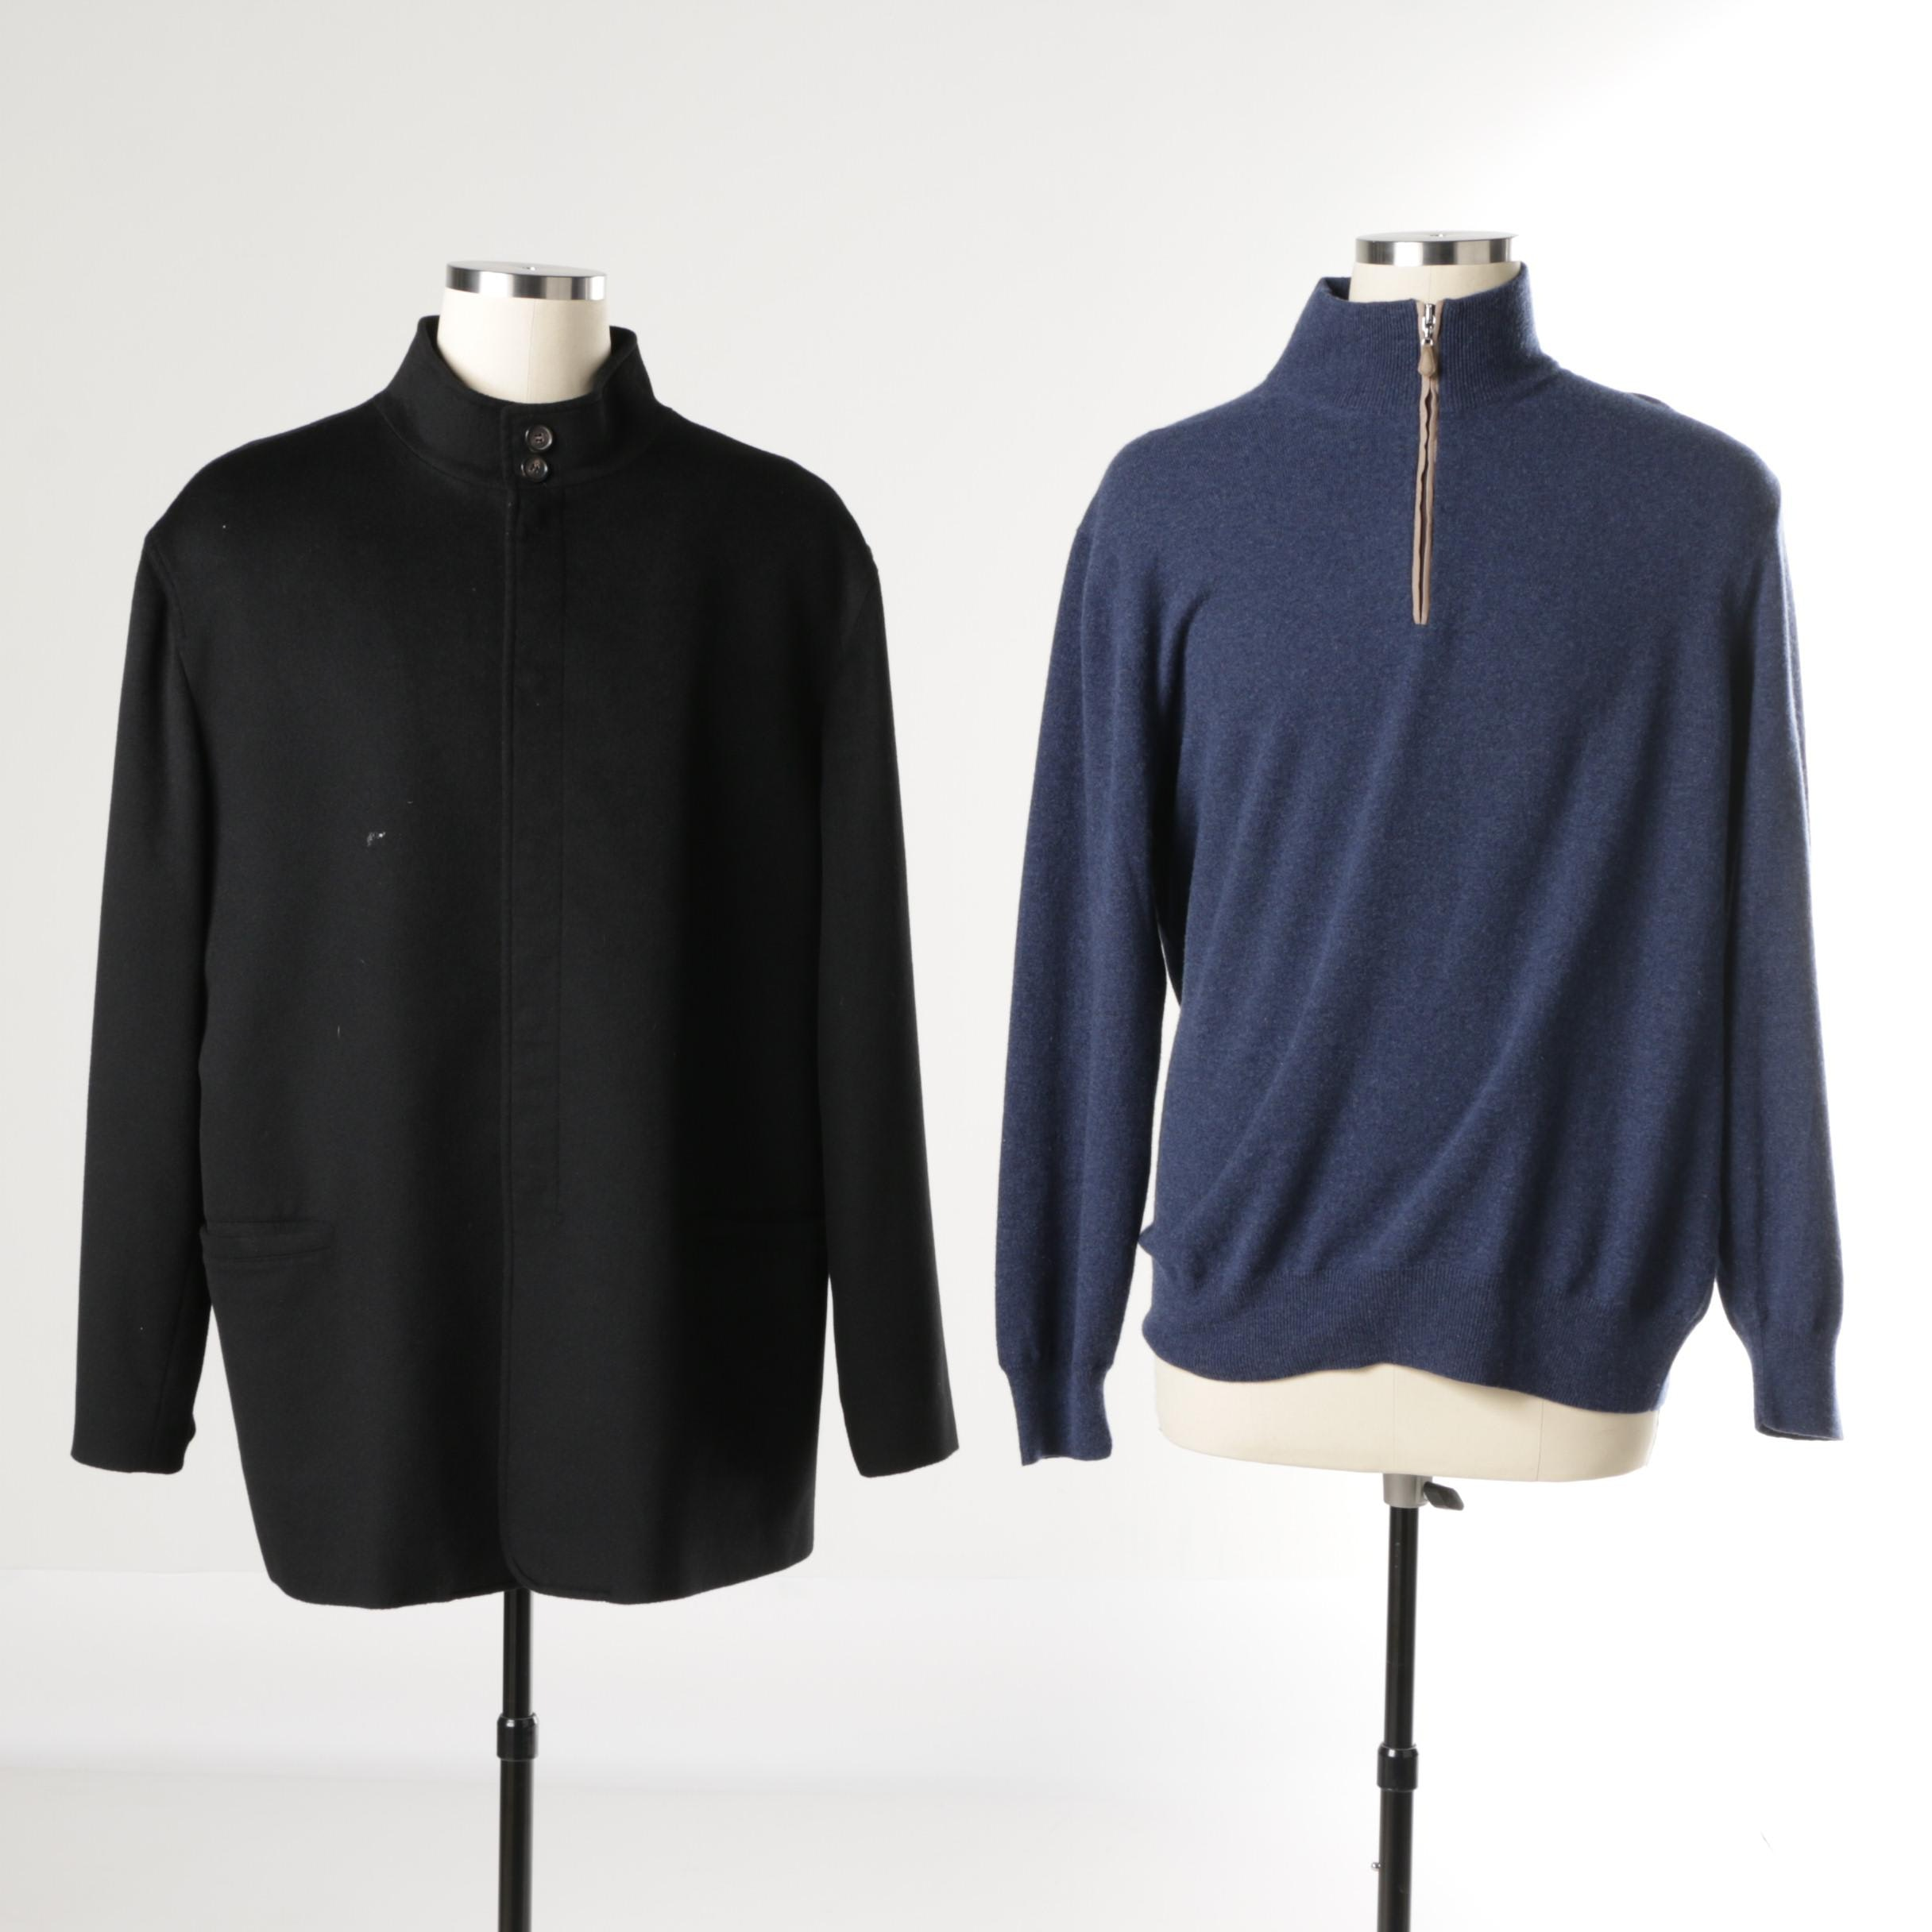 Men's Cashmere Pull-Over Sweater and Jacket